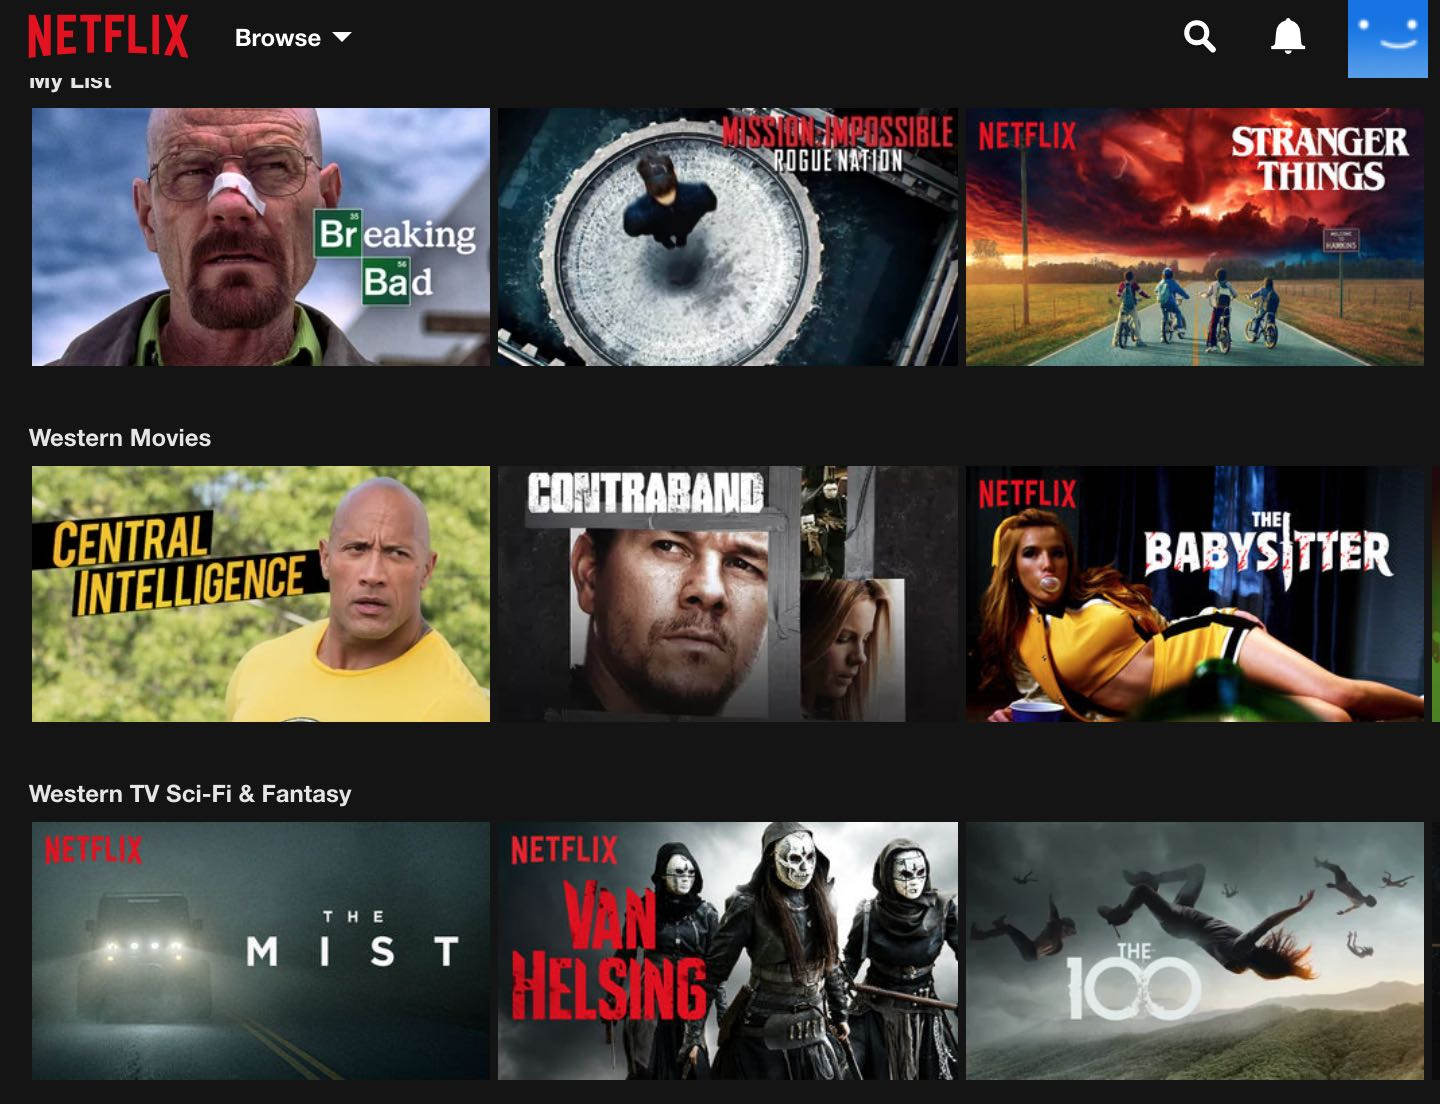 Guide to unblocking Netflix - how to watch best shows with KeepSolid VPN Unlimited